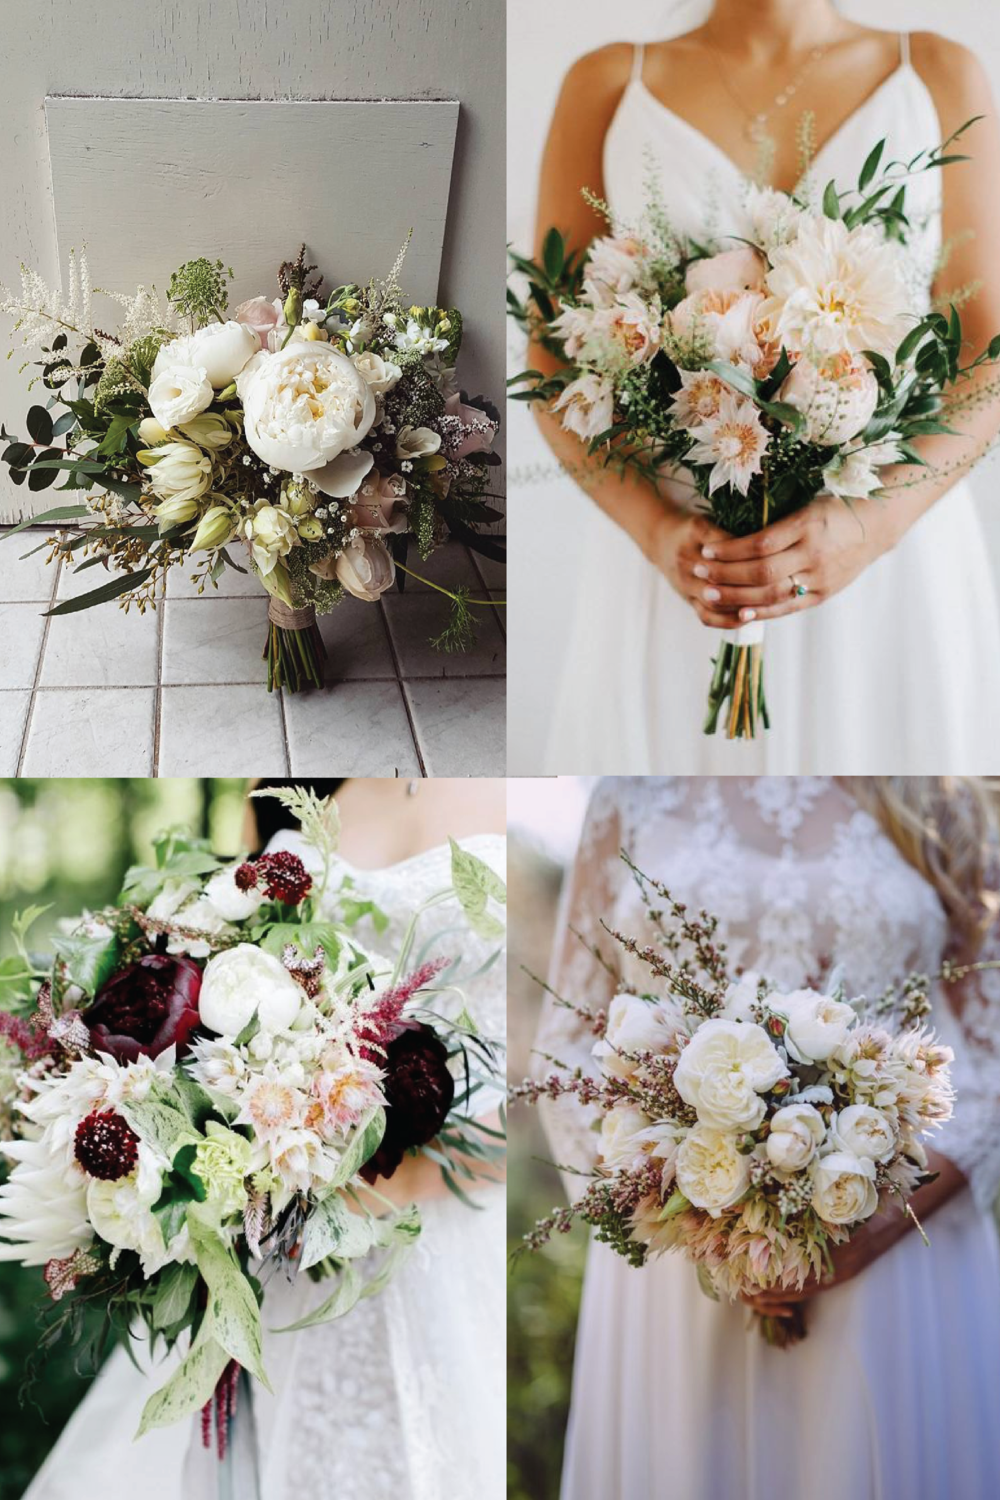 From clockwise, from top left: flowers and photo by Lime Tree Bower; flowers by Sara K Byrne and photo by Dylan M Howell; flowers by Sullivan Owen and photo by Emily Wren Weddings; flowers by Wild Lotus Florist and photo by Kieran Moore.